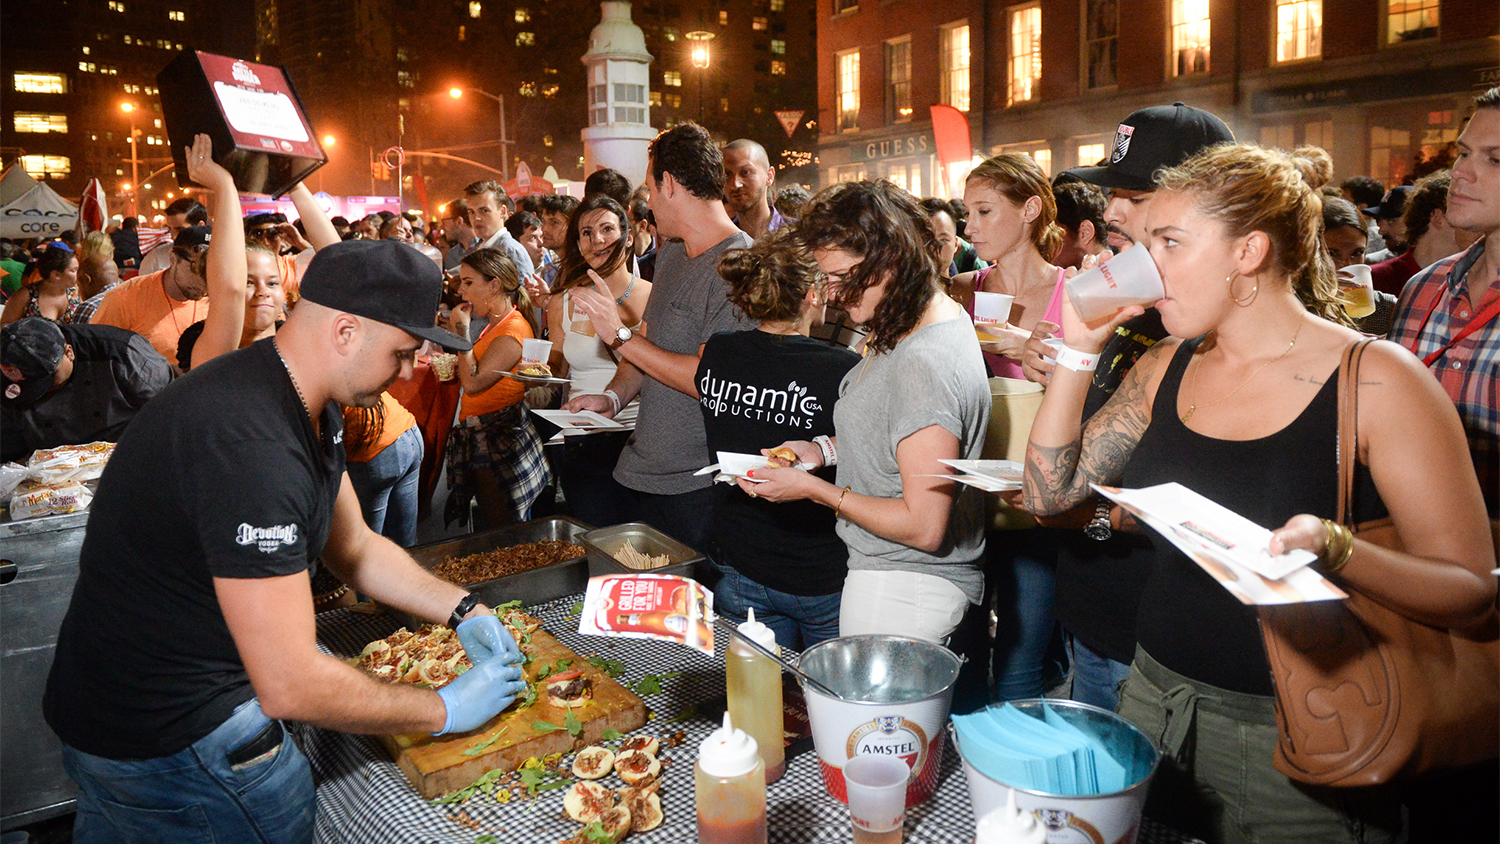 August 19, Time Out New York's Battle of the Burger